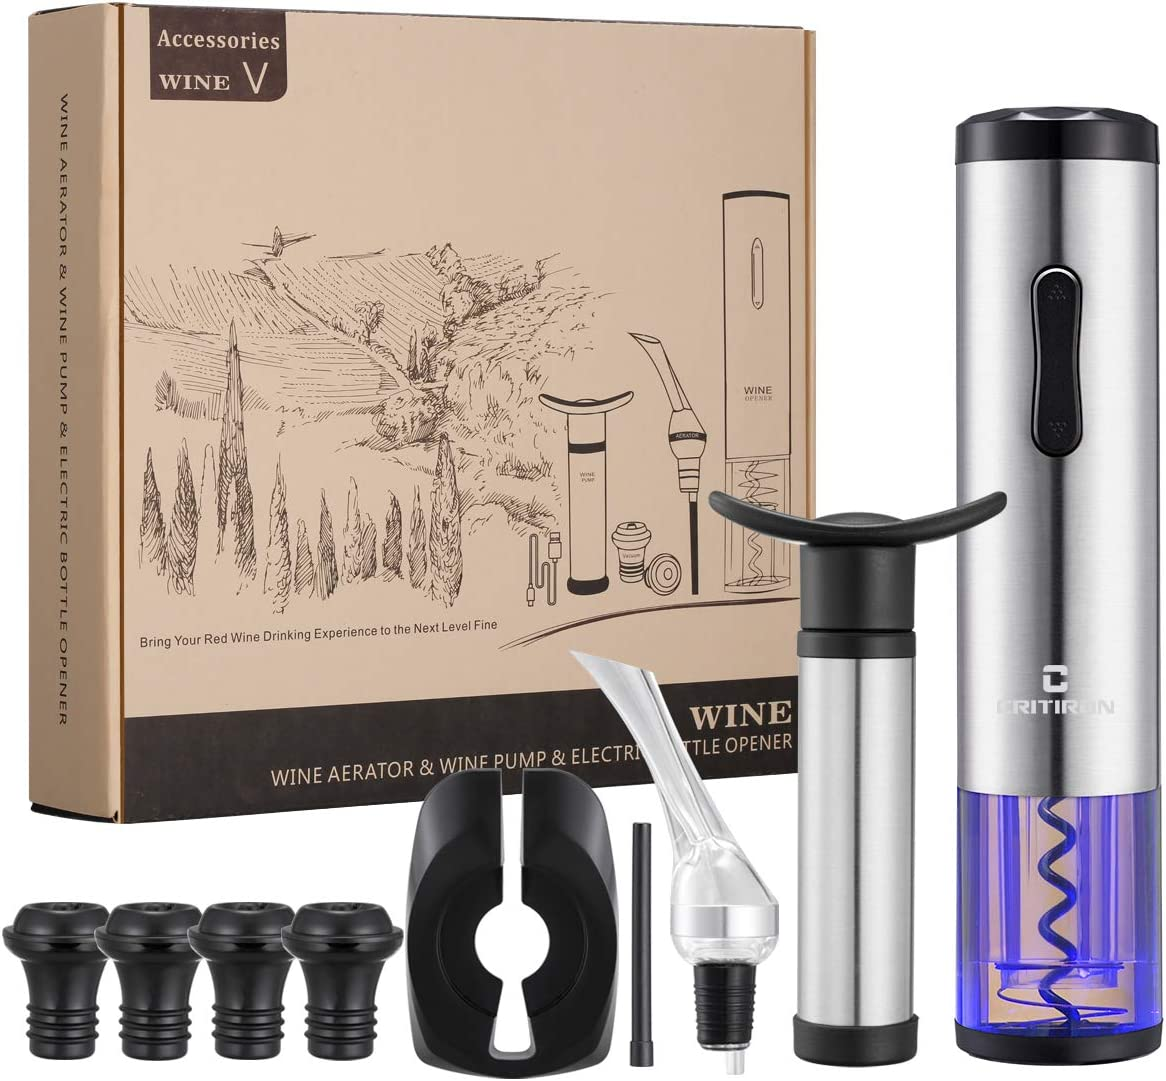 CRITIRON Electric Wine Opener Set Rechargeable Automatic Wine Bottle Opener Cordless Electric Corkscrew with Aerator Pourer Foil Cutter Wine Saver Vacuum Pump and 4 Wine Stoppers